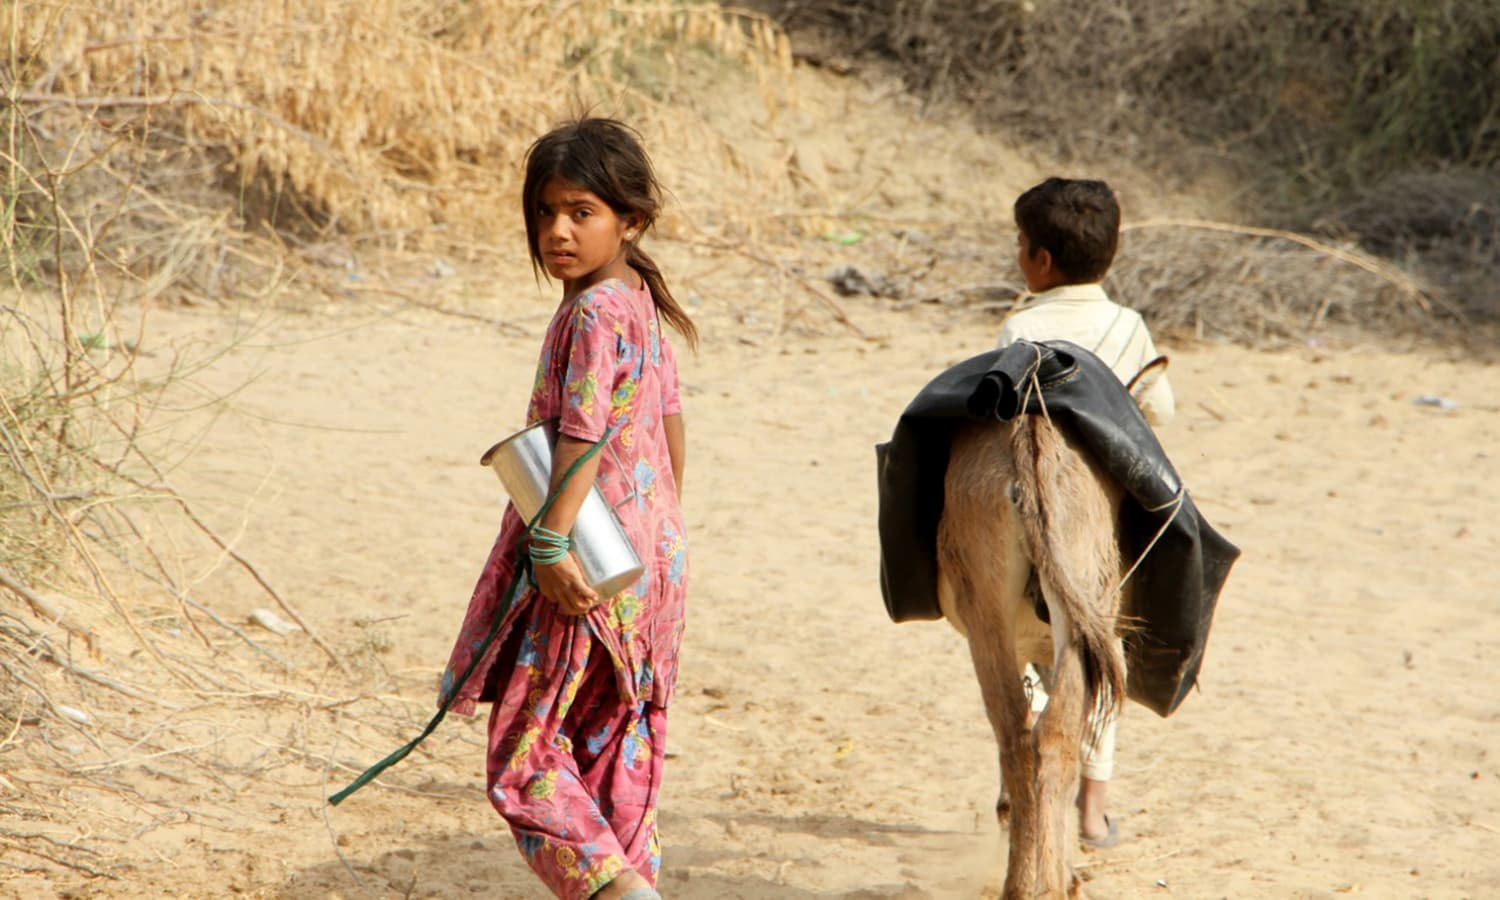 A young girl and boy set out to look for water.